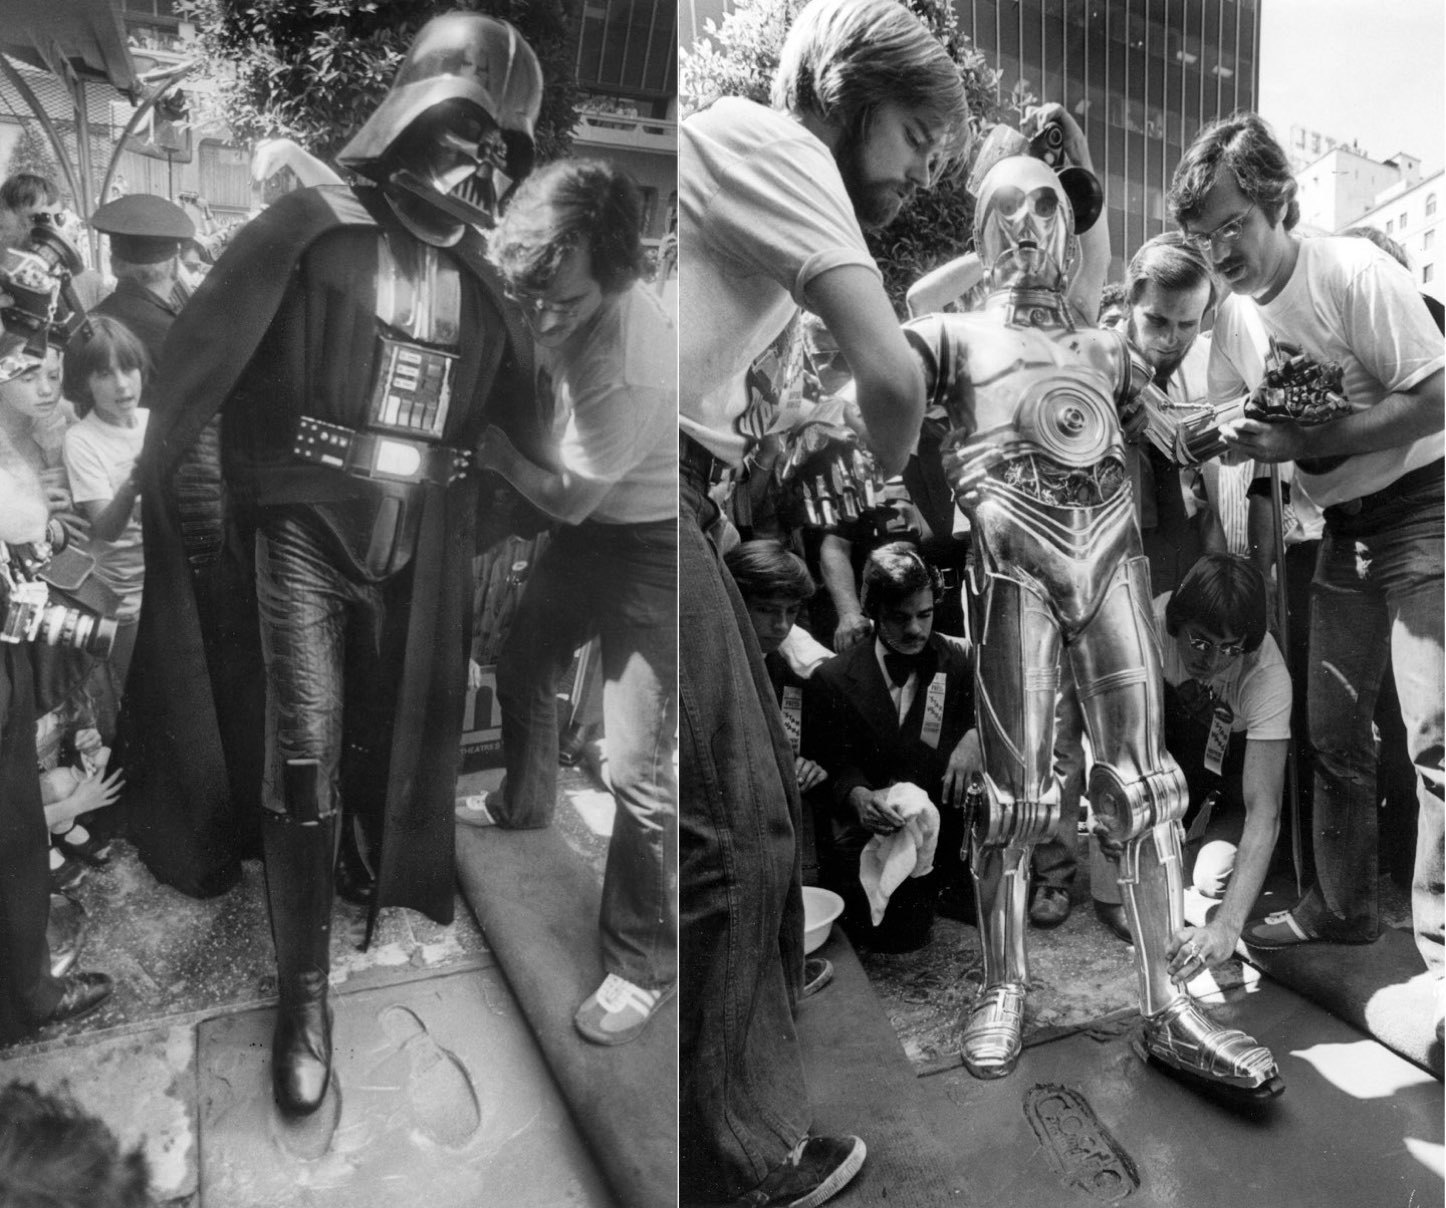 C-3PO and Darth Vader add a little science fiction to the forecourt of the stars at the Chinese Theatre on August 3, 1977.